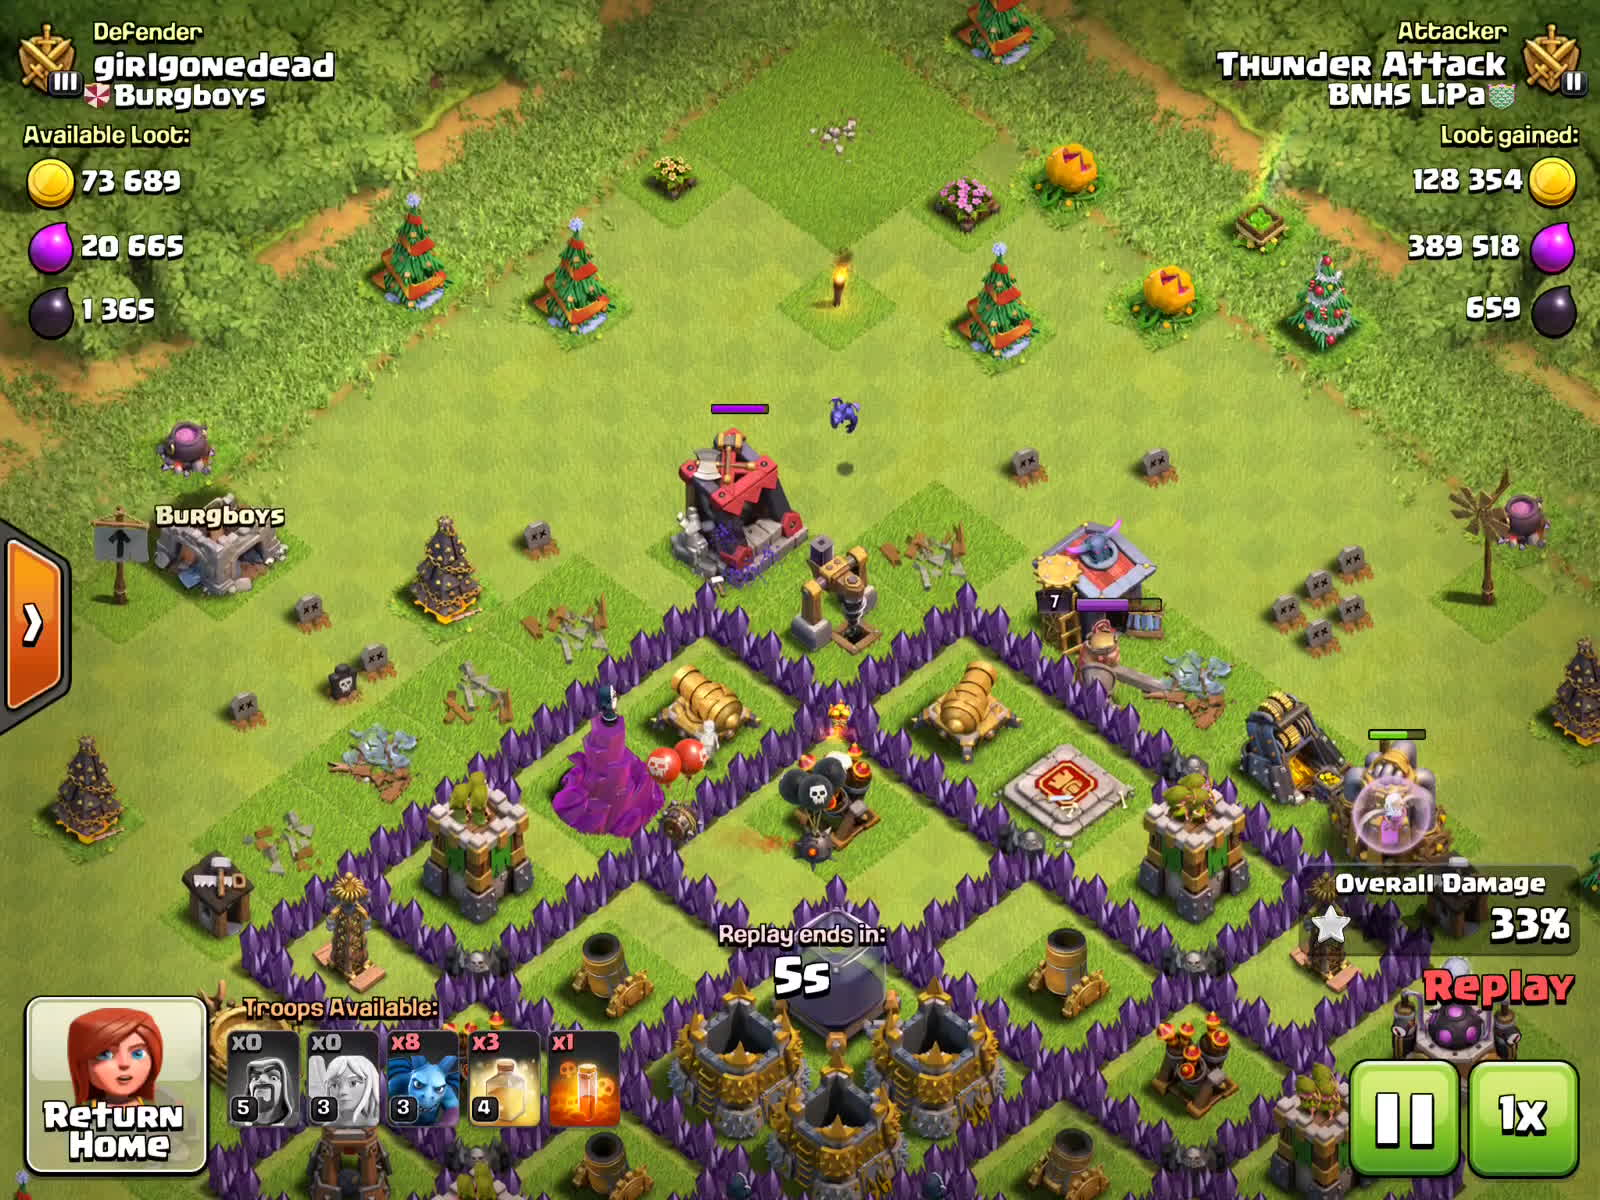 clashofclans, Hogicide GIFs